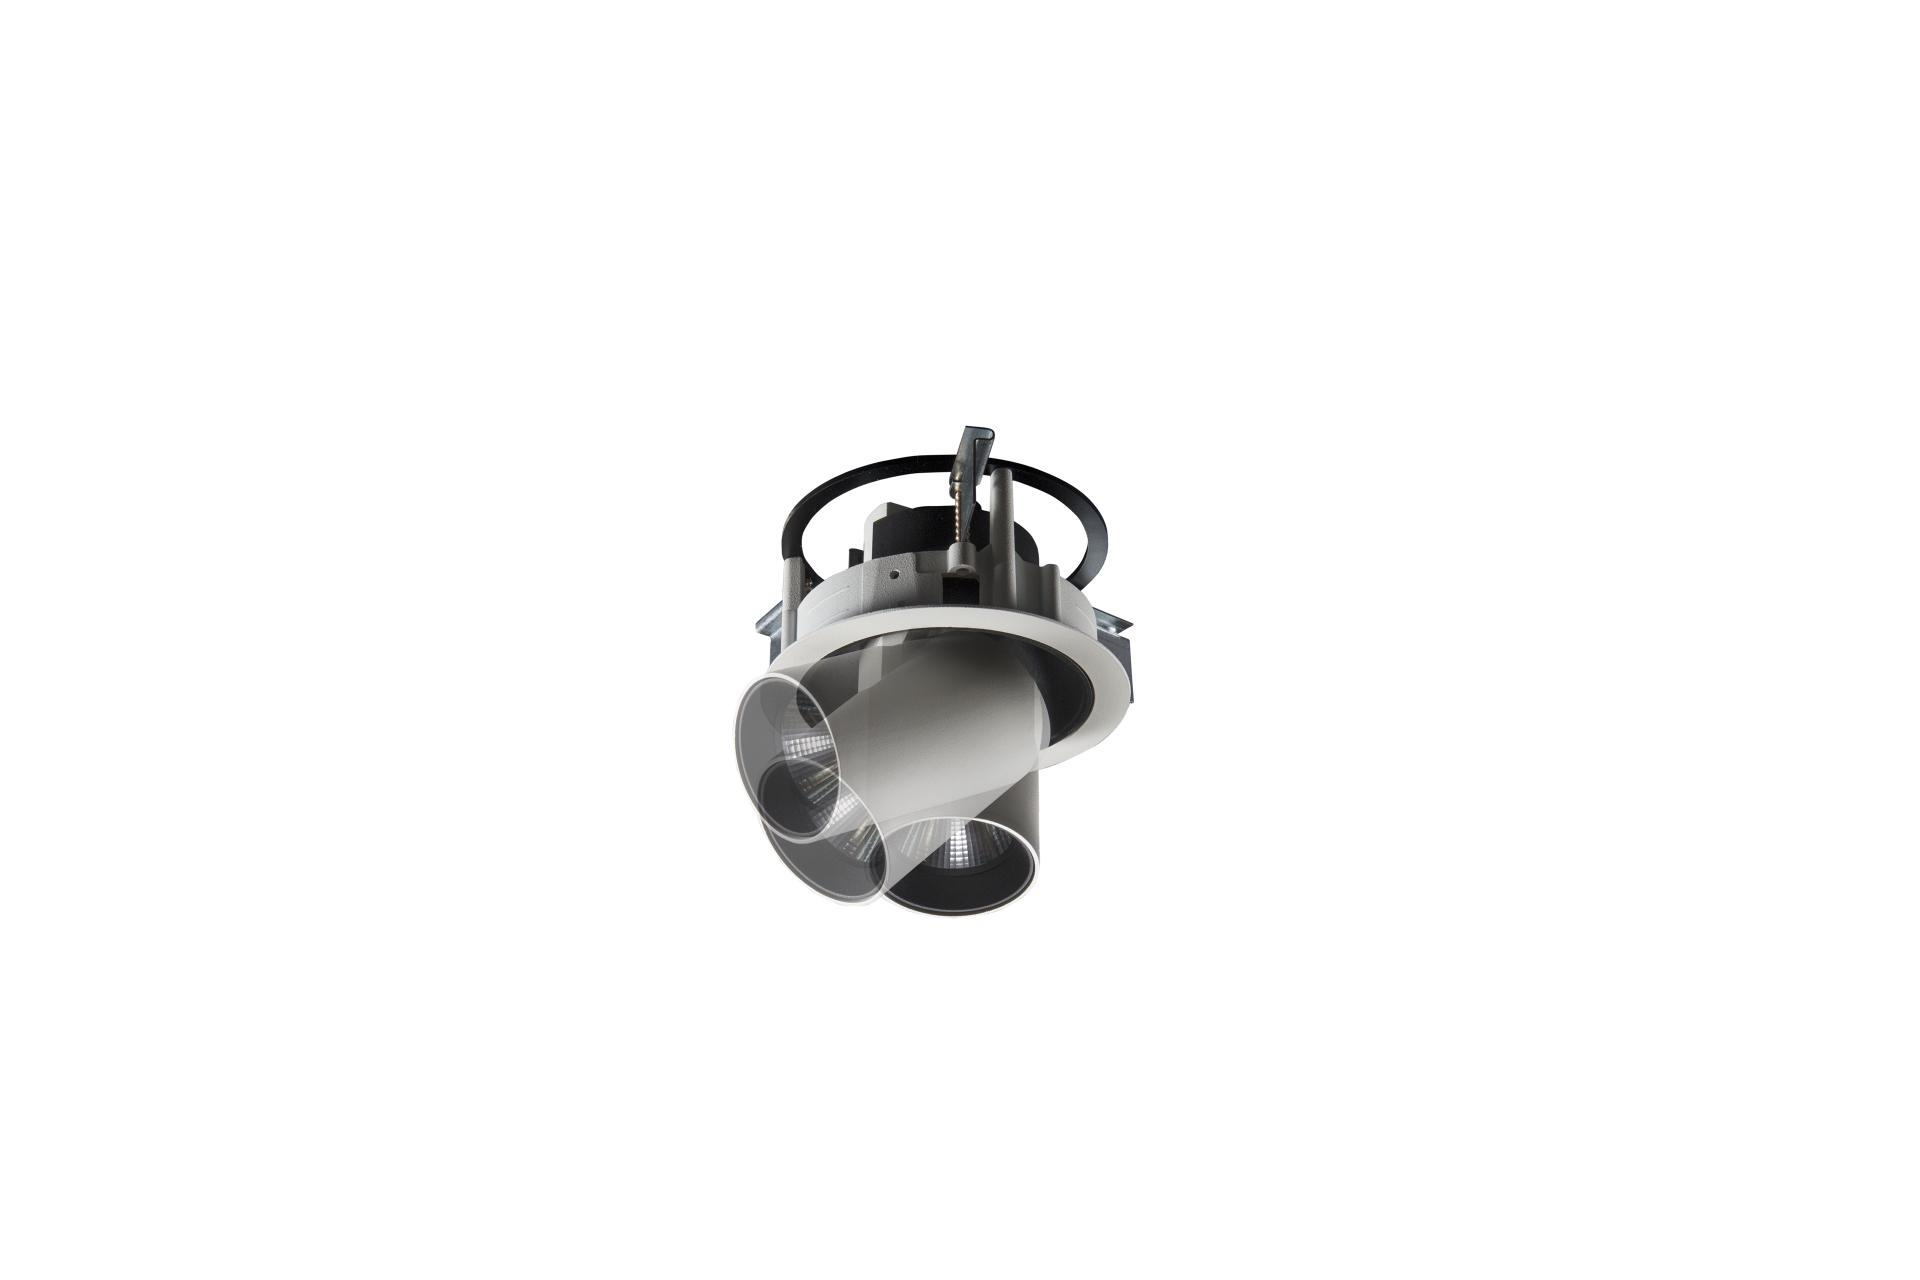 Hance Downlight_slider1